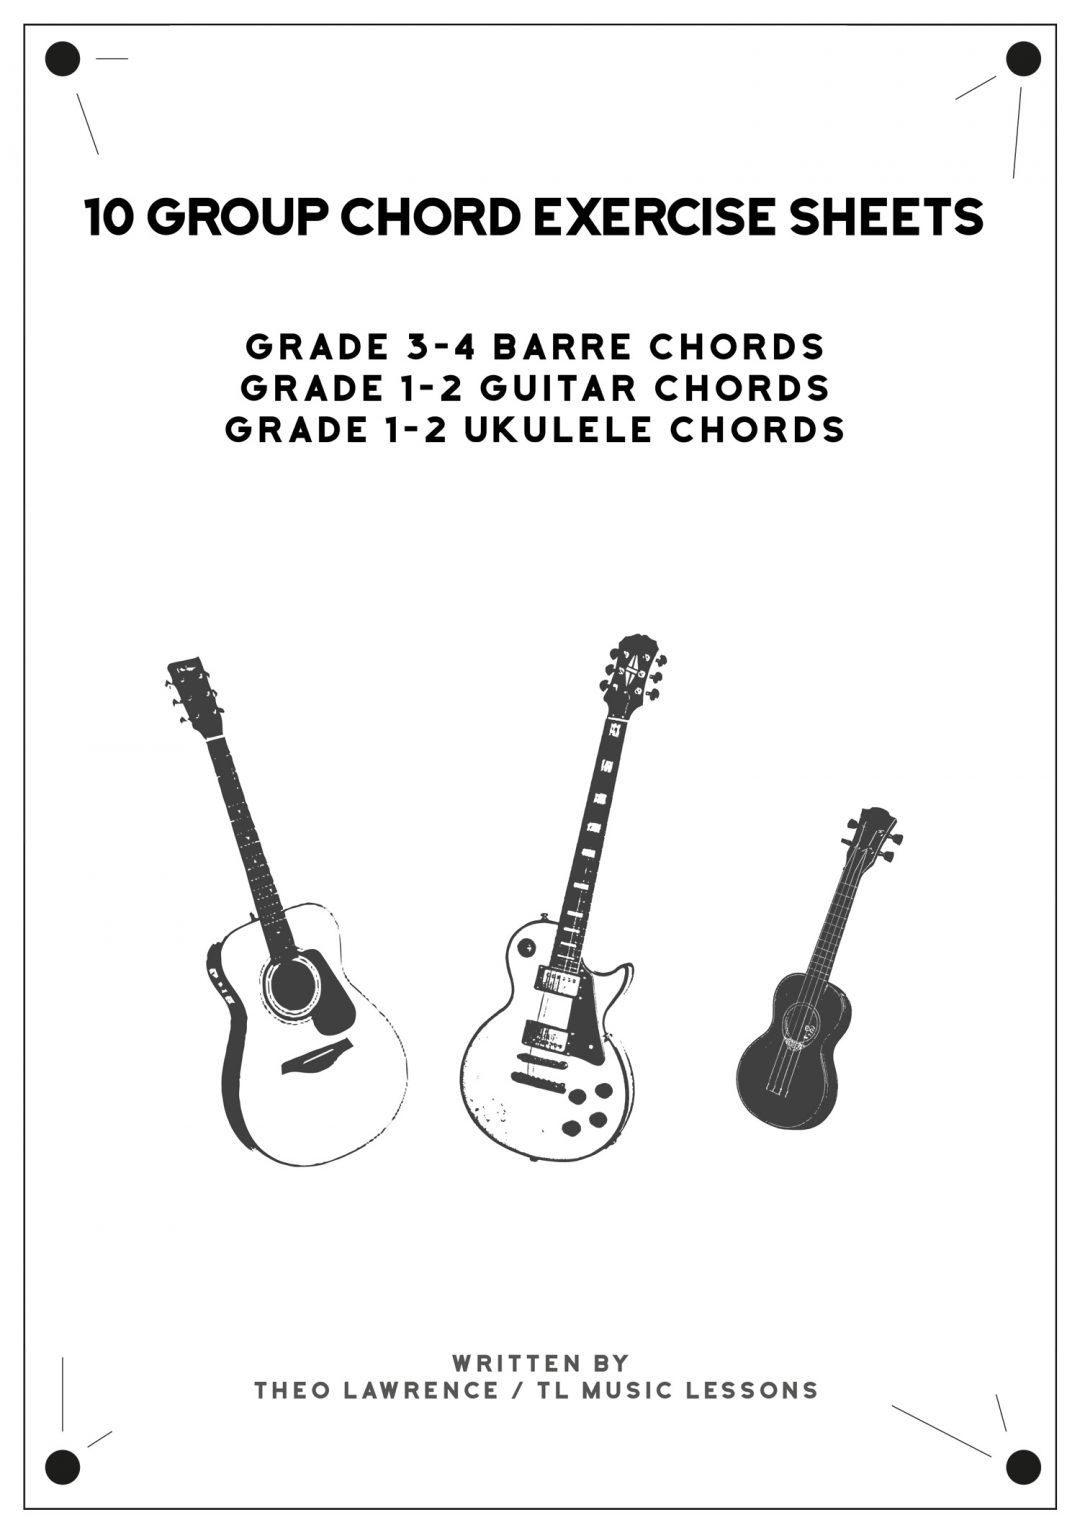 (PREMIUM) – 10 Group Chord Exercise Sheets – 3 Ebooks – Guitar & Ukulele